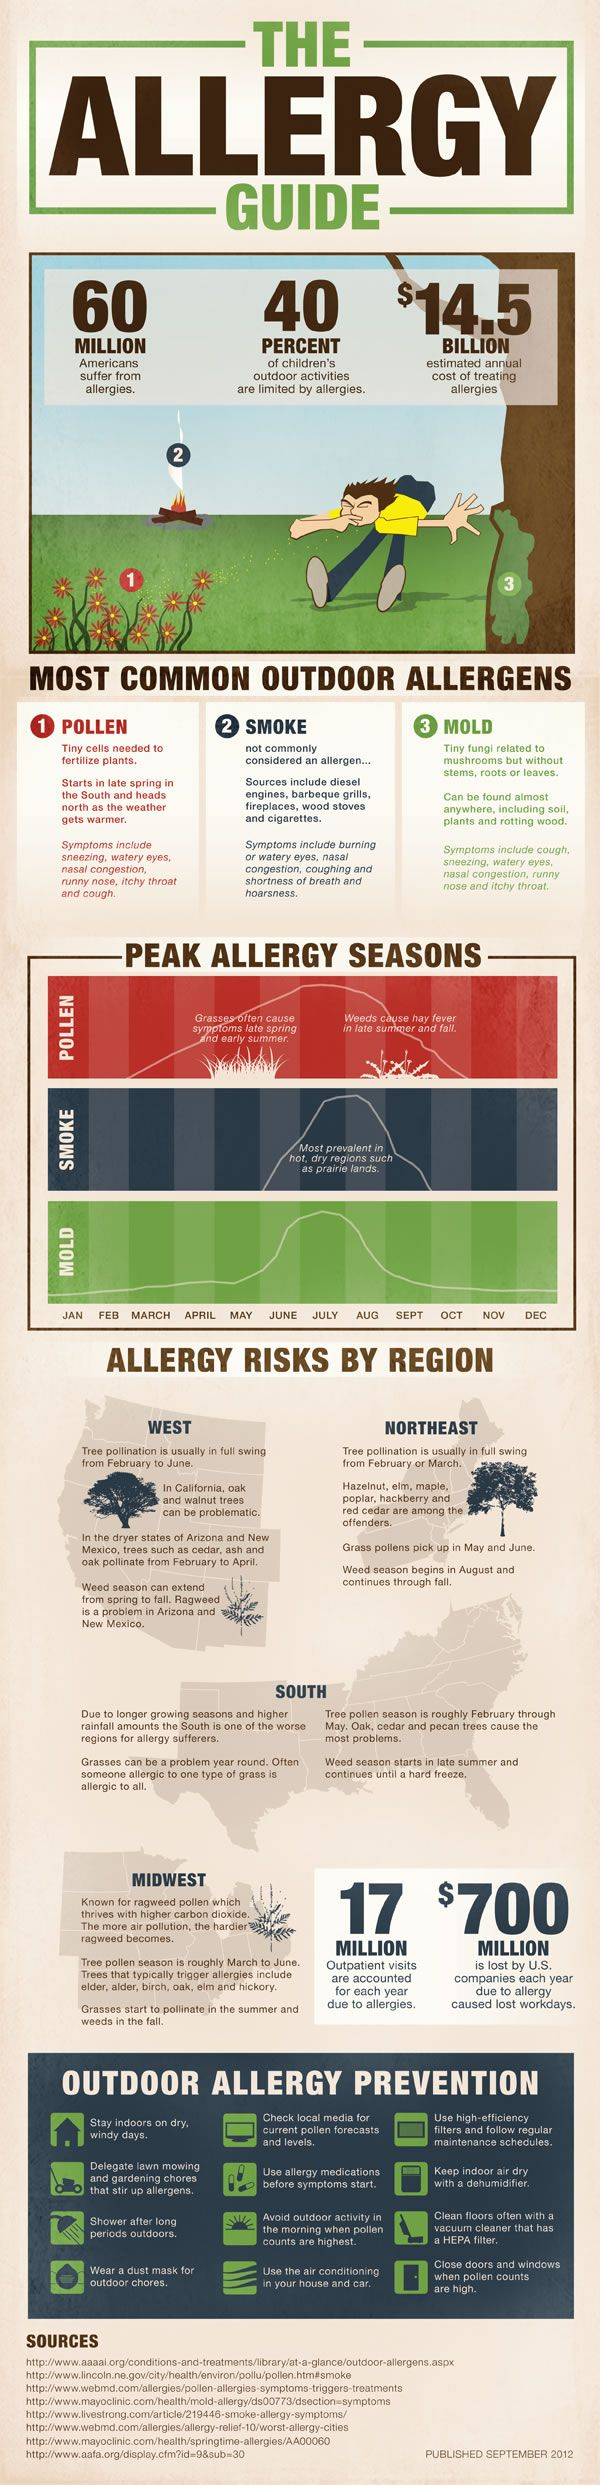 Air Pollution and Allergies in the USA [Infographic